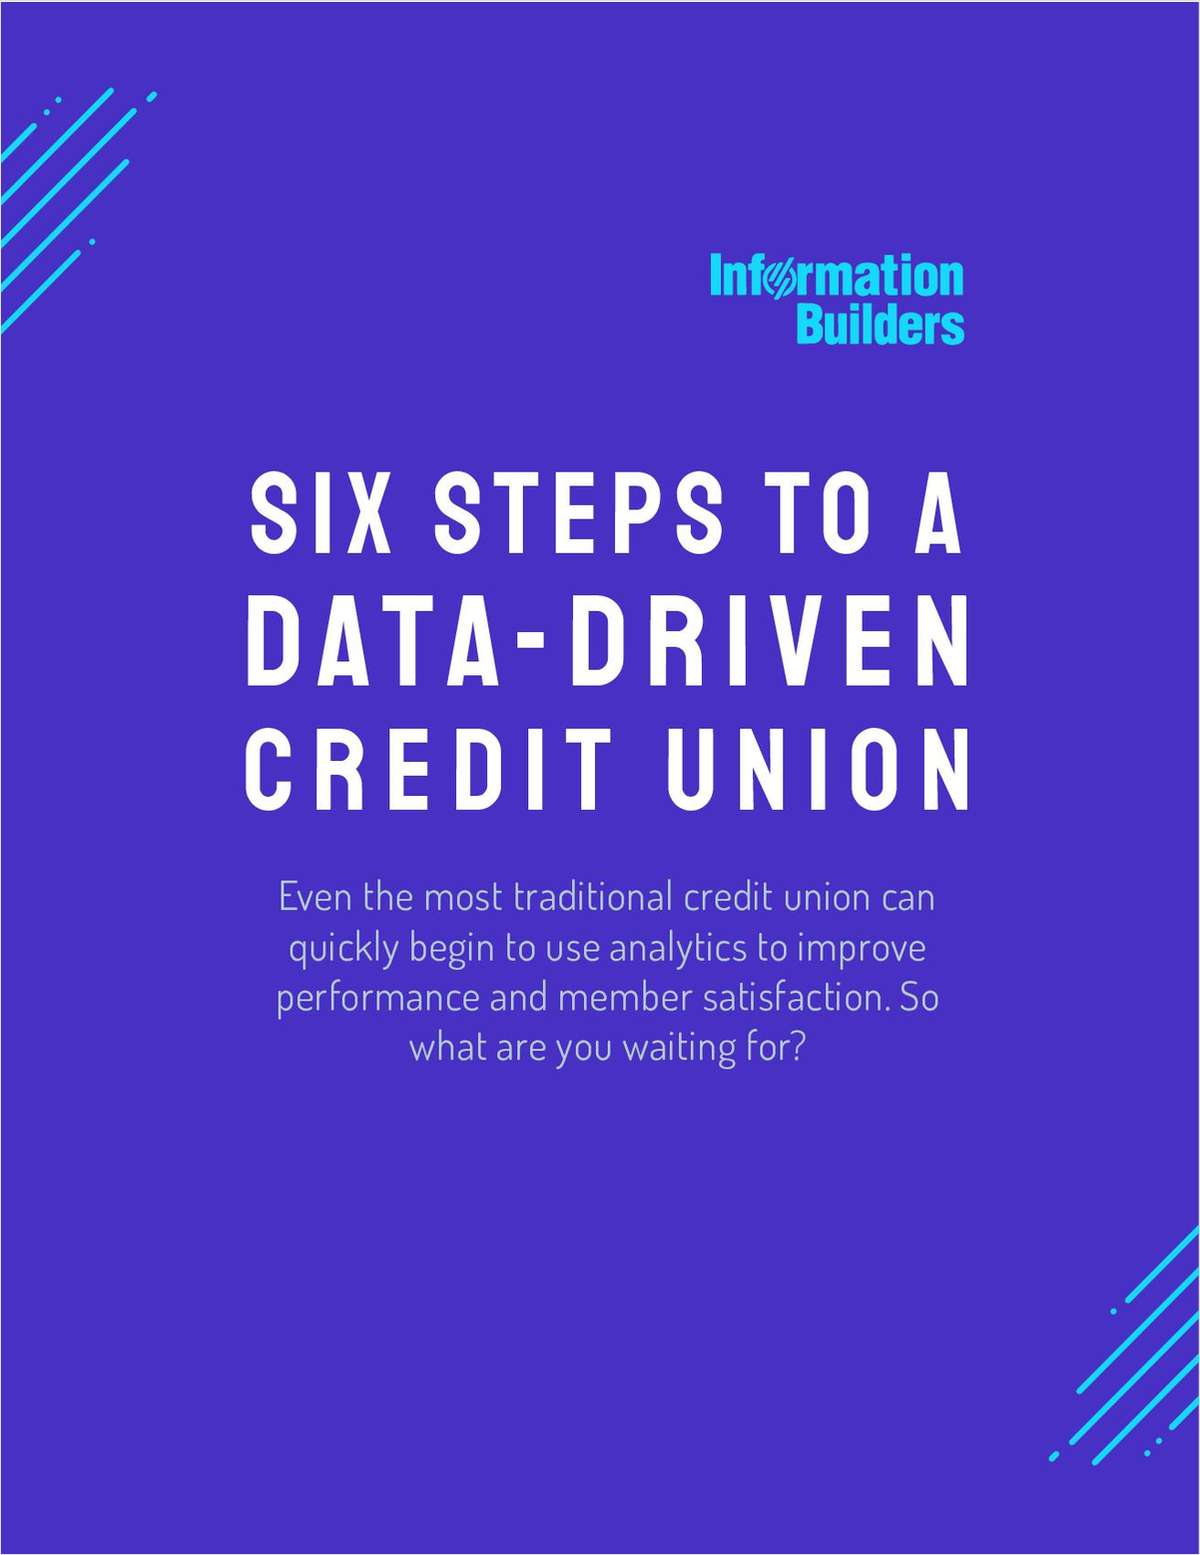 Six Steps to a Data-Driven Credit Union